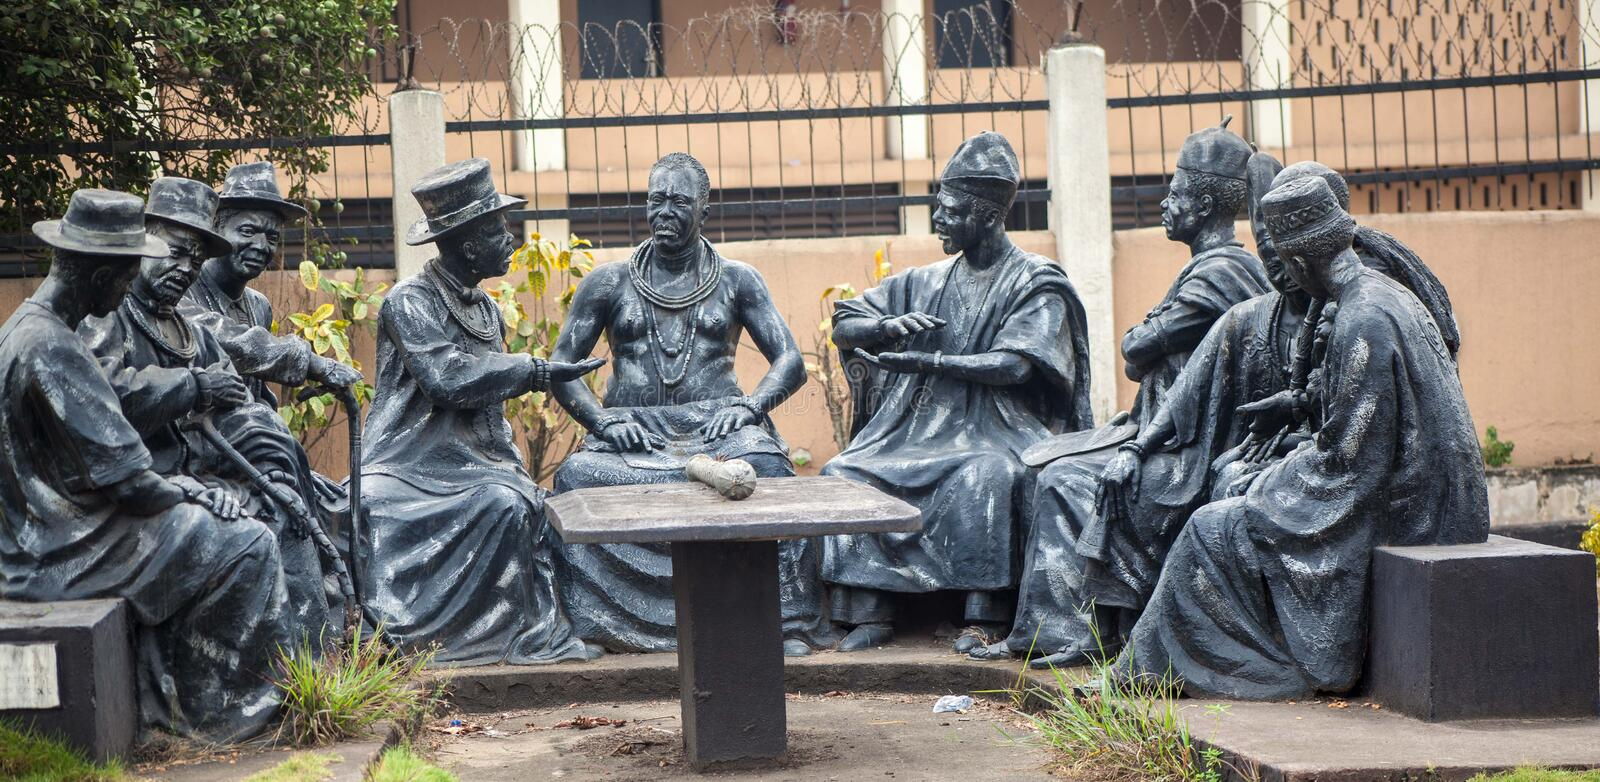 The King with his Elders. Statues of several men gathered around a table. They seem to be chiefs advising a king royalty free stock photo